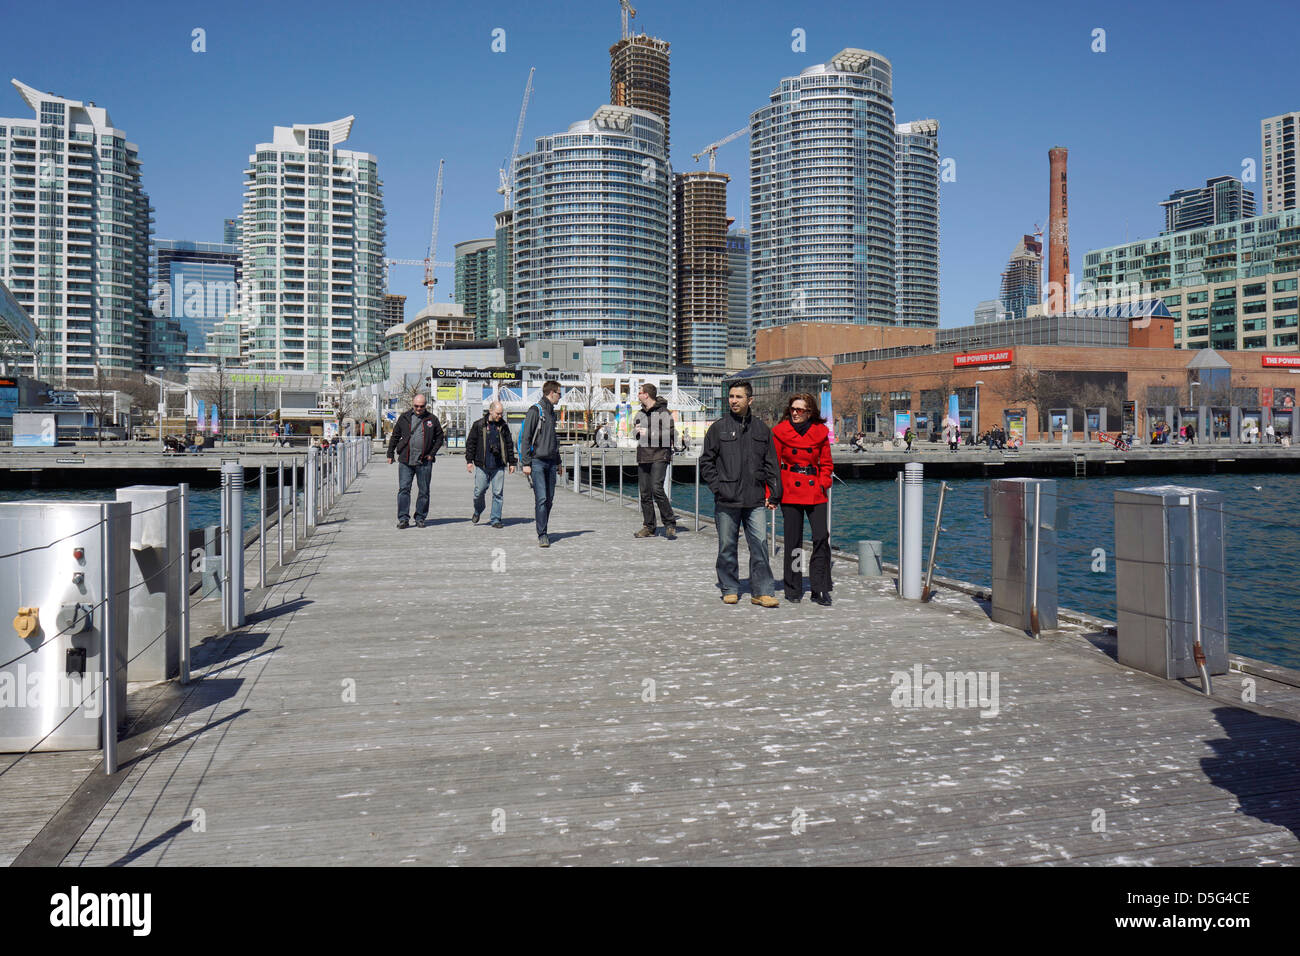 Queens quay harbourfront terminal